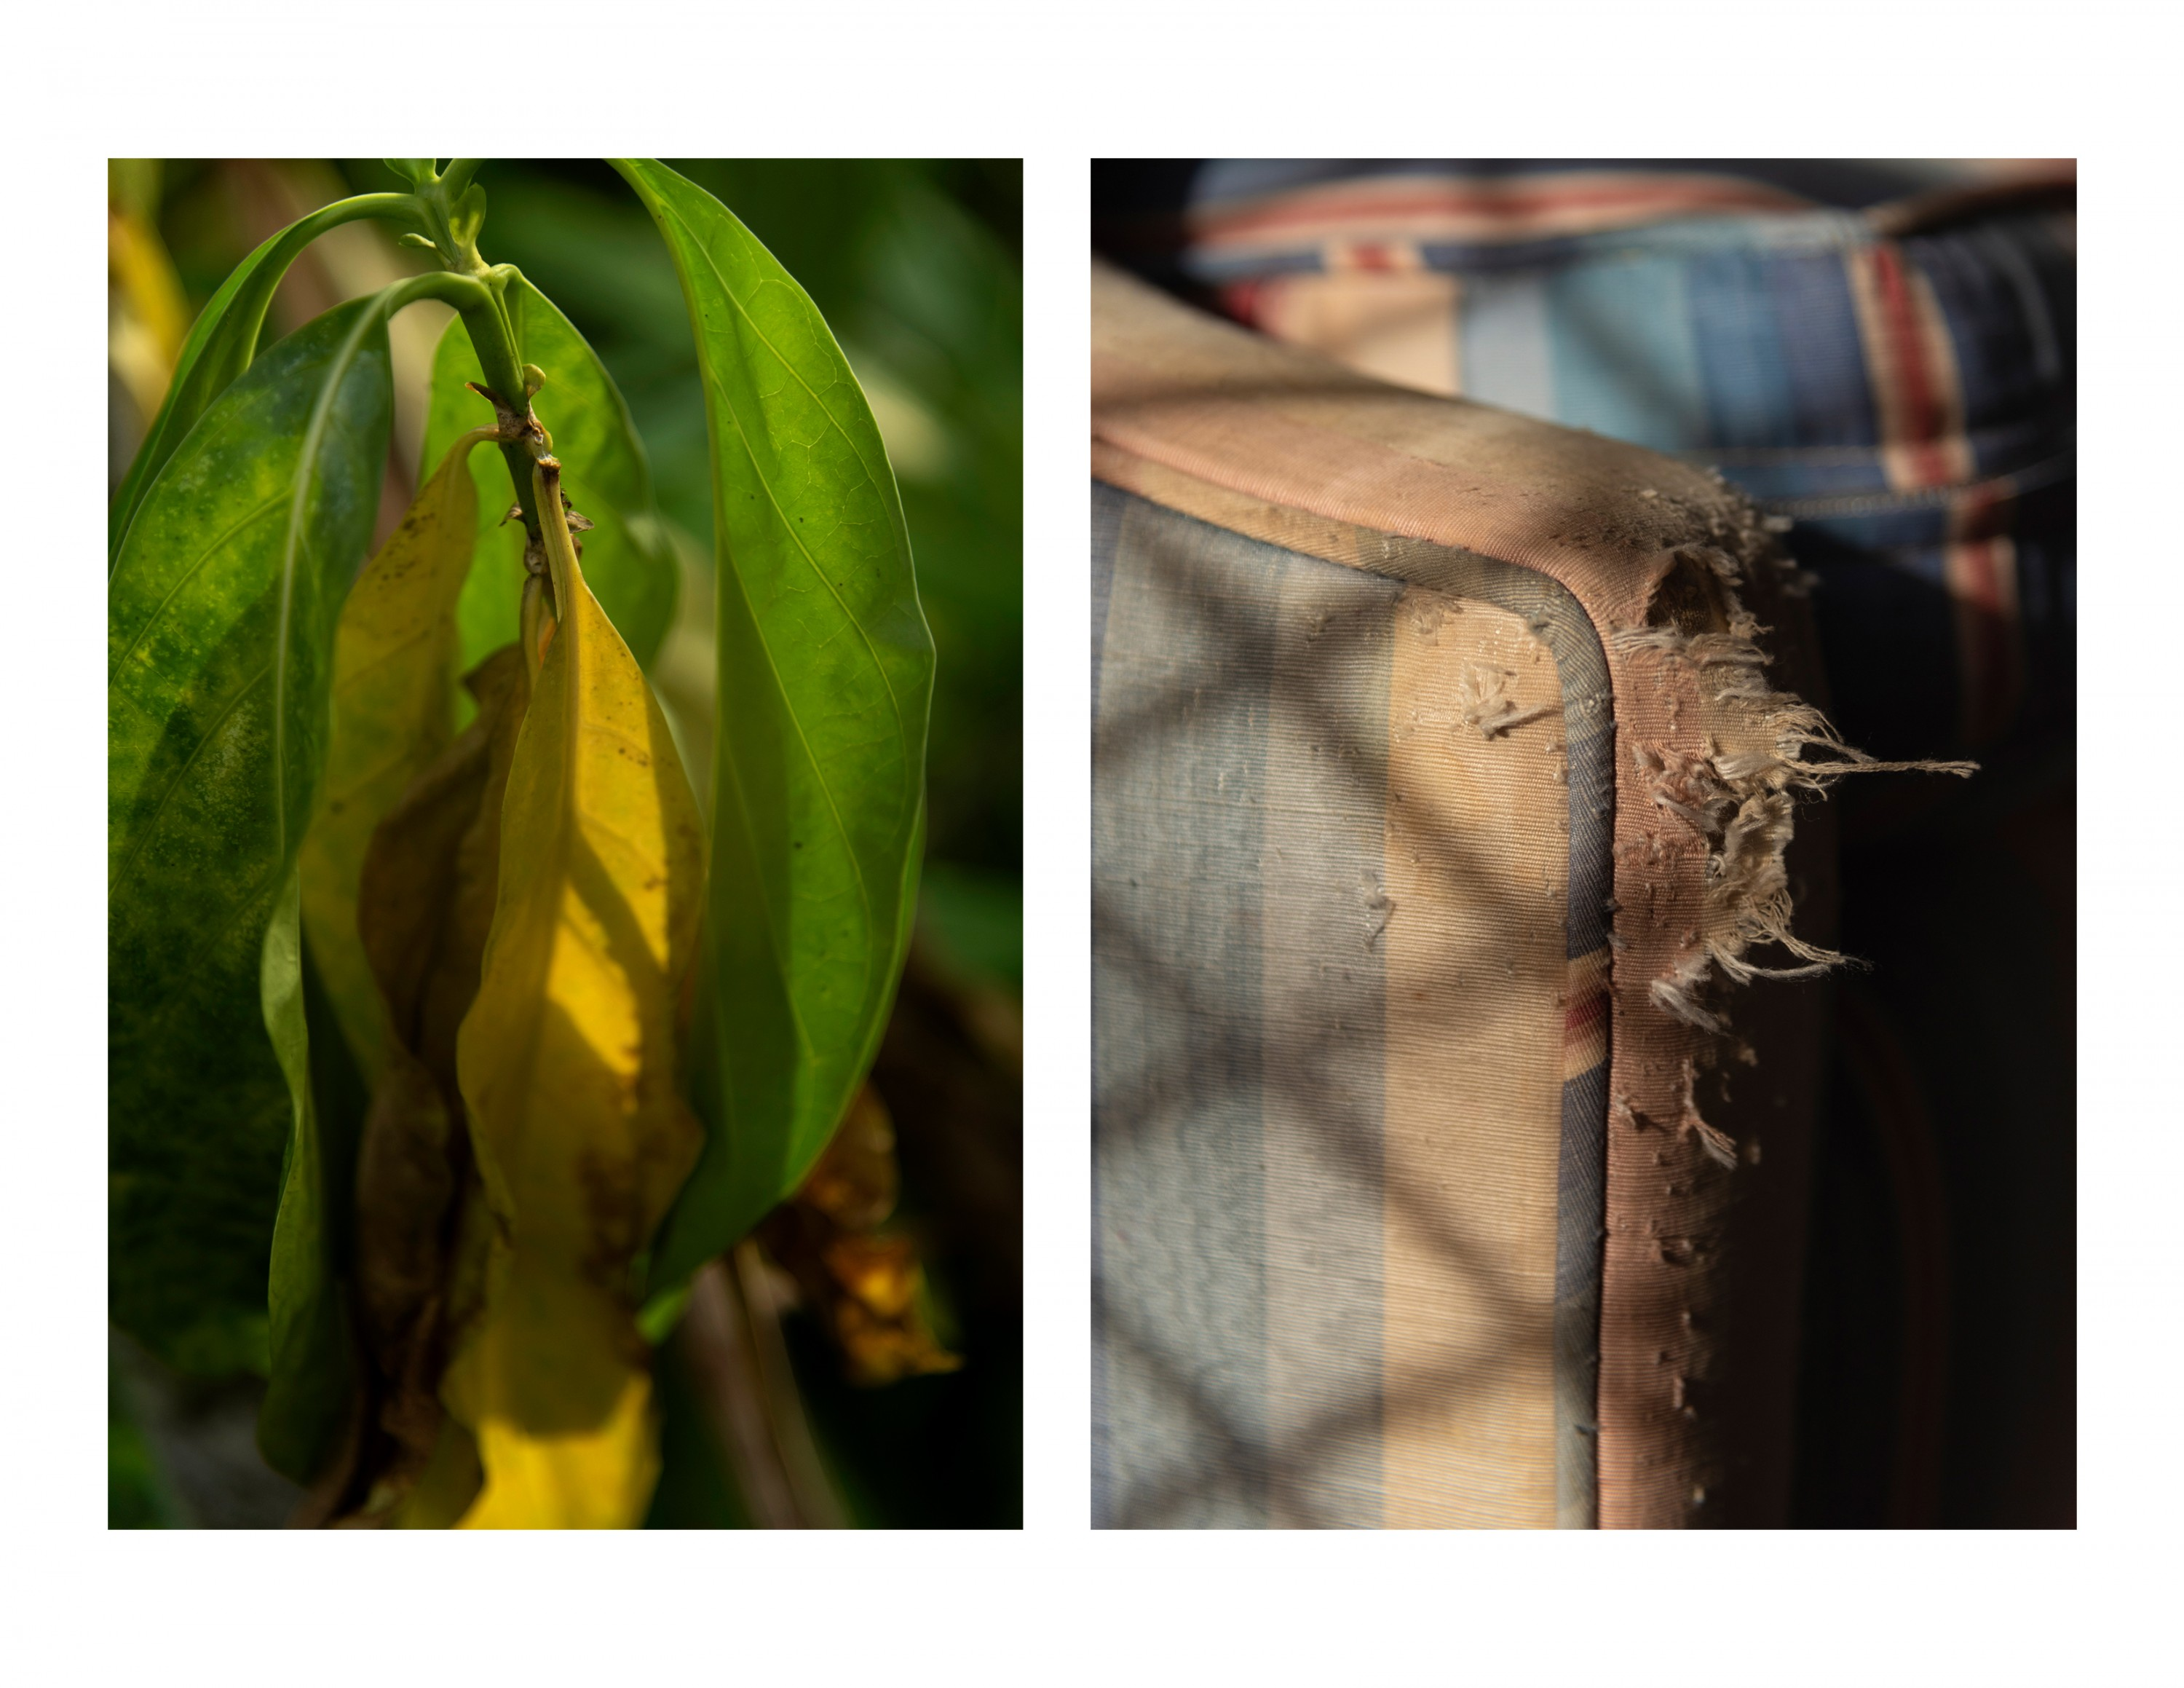 Two photographs next to each other, one on the left has leaves in sunshine and the one on the right is a corner of a couch that is scuffed up